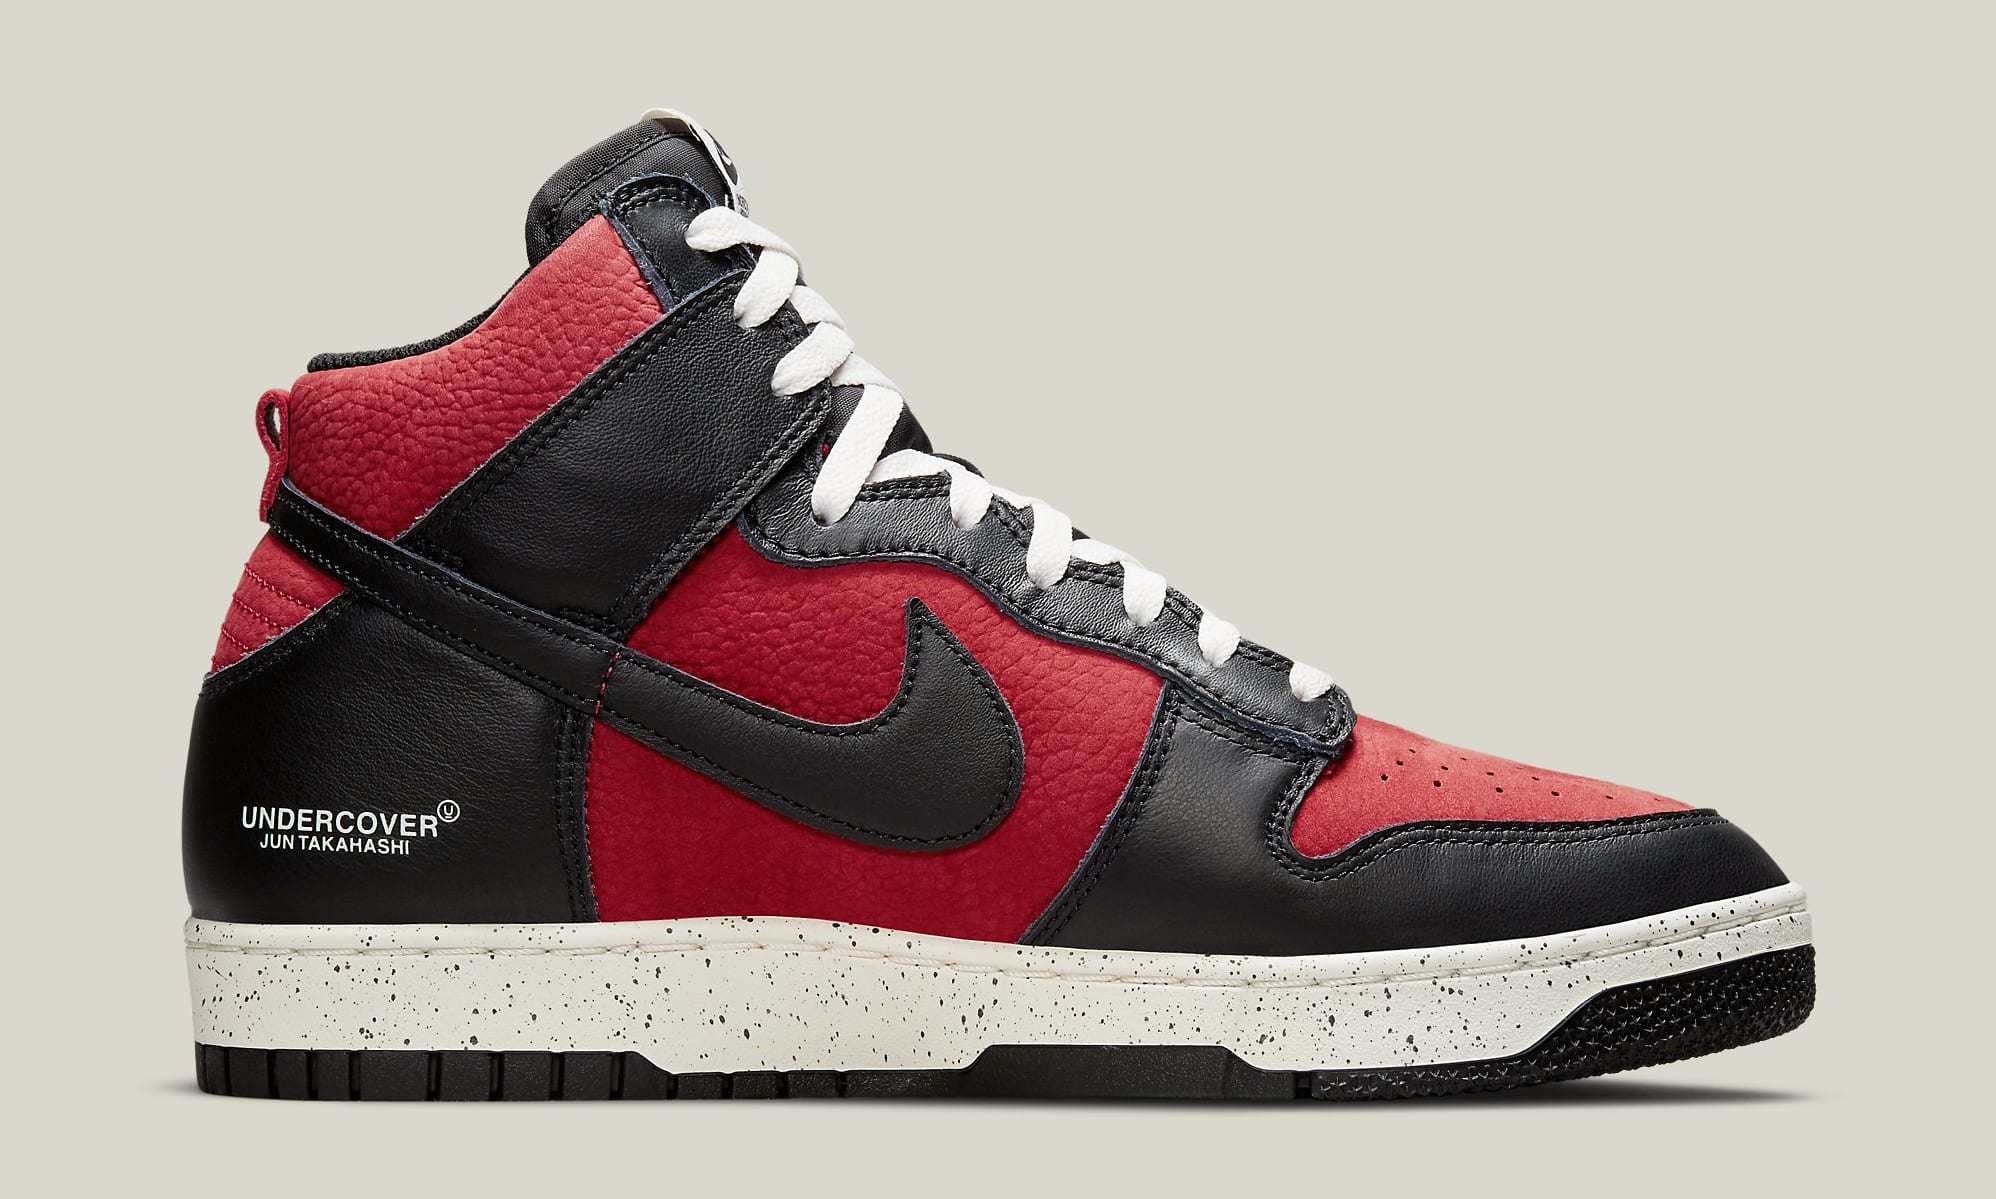 Undercover x Nike Dunk High 1985 'Gym Red' DD9401-600 Medial